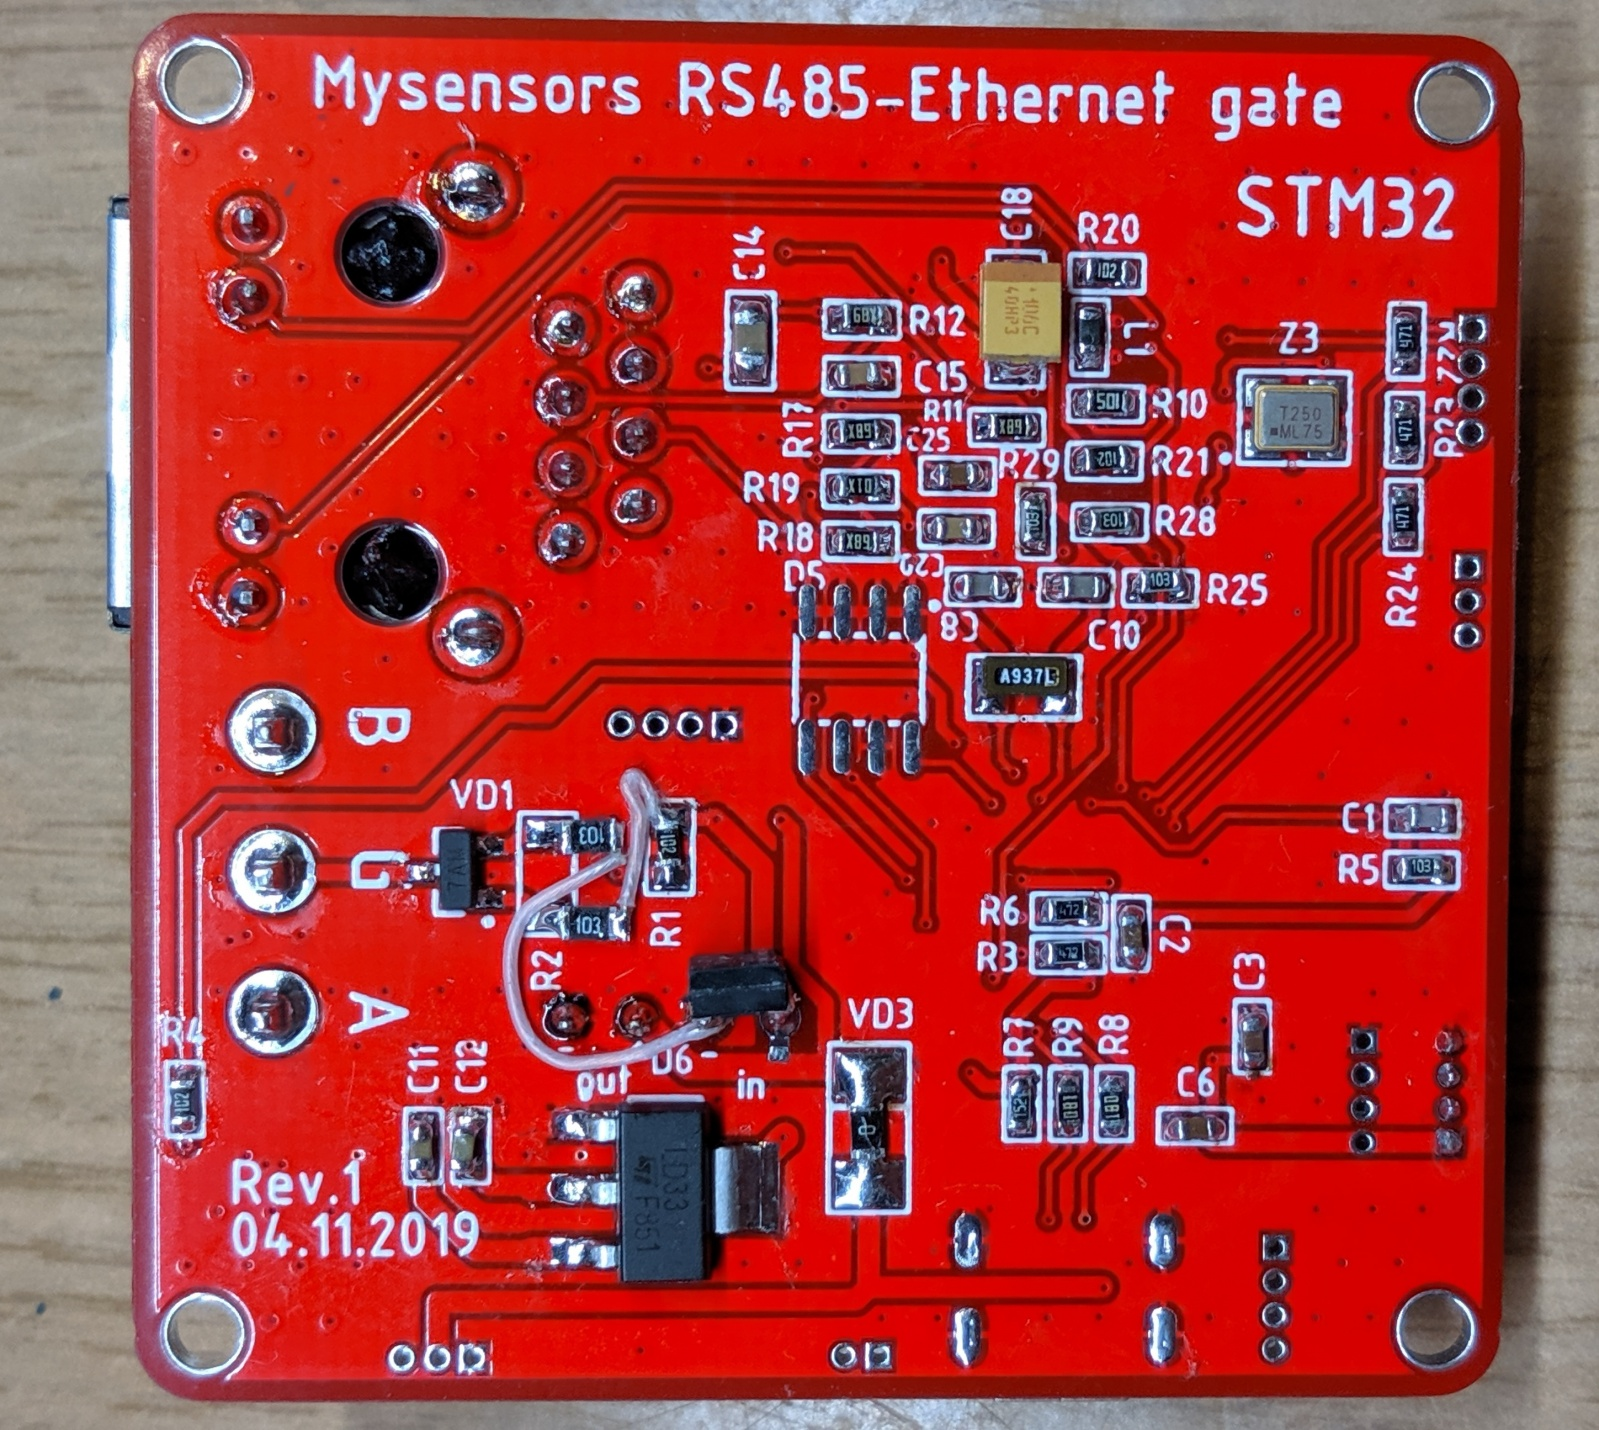 IoT шлюз Ethernet-RS485 на базе STM32 - 10